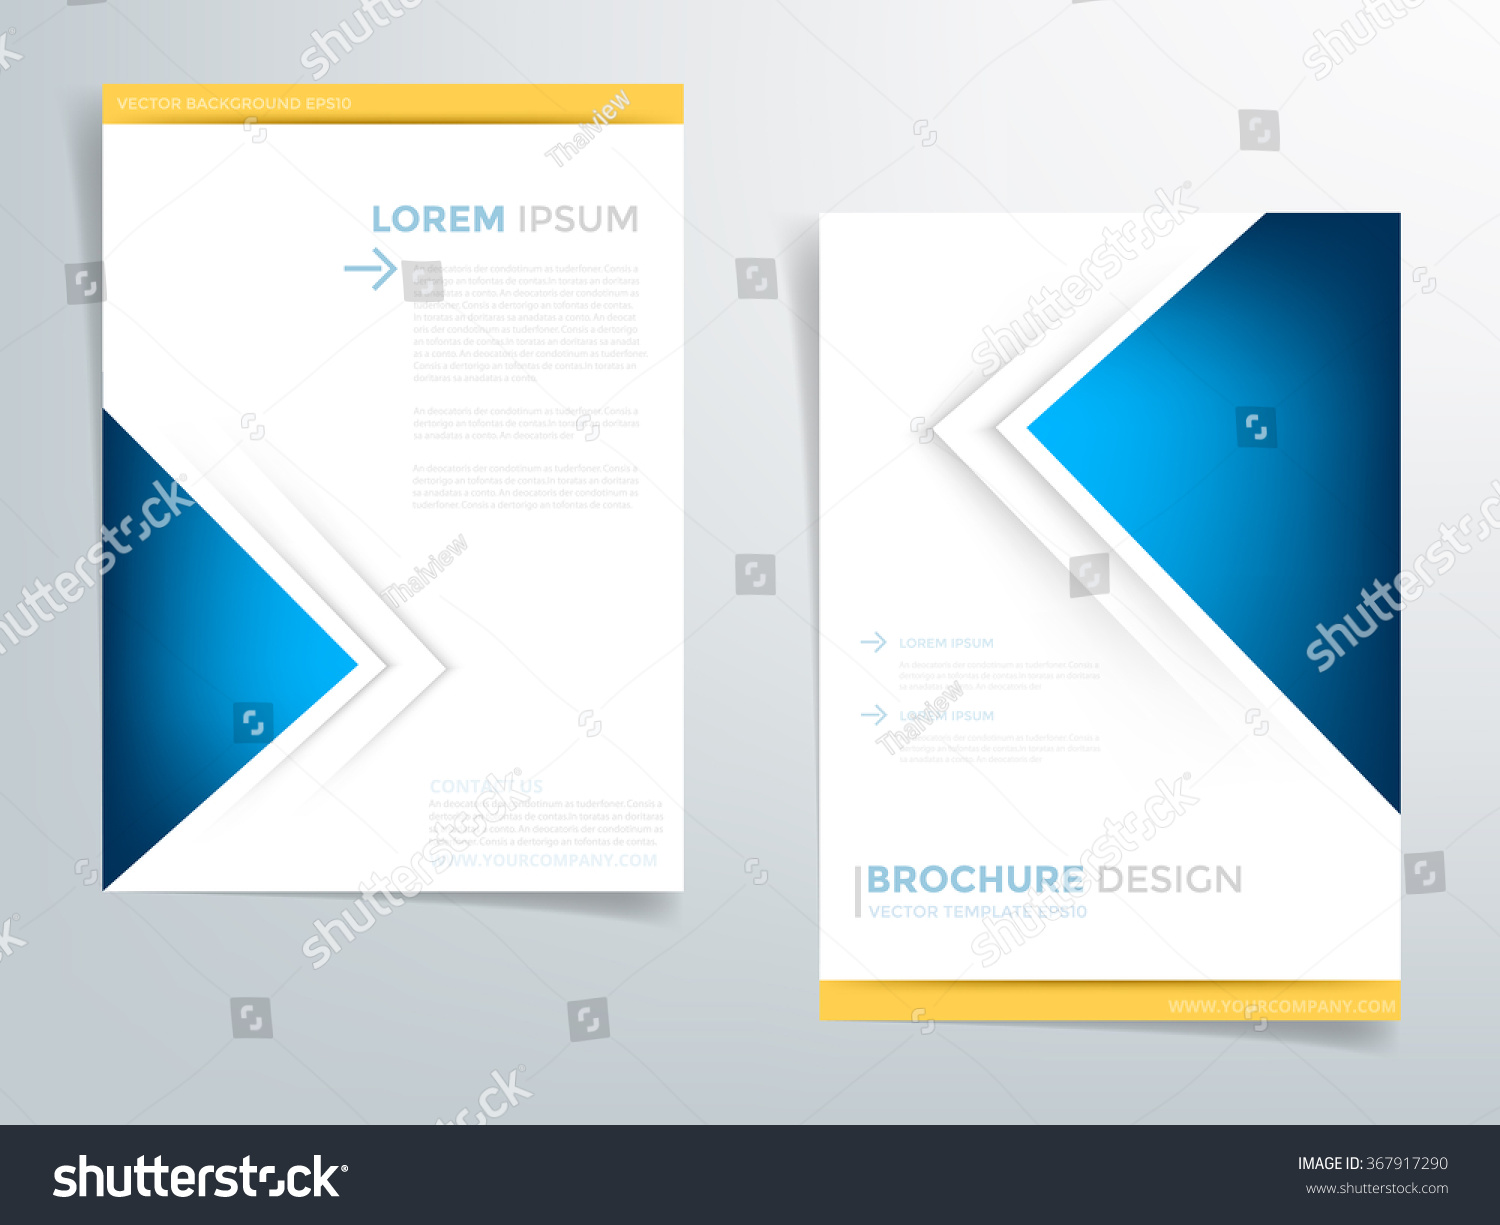 paper ad design templates - blue brochure template flyer design background stock